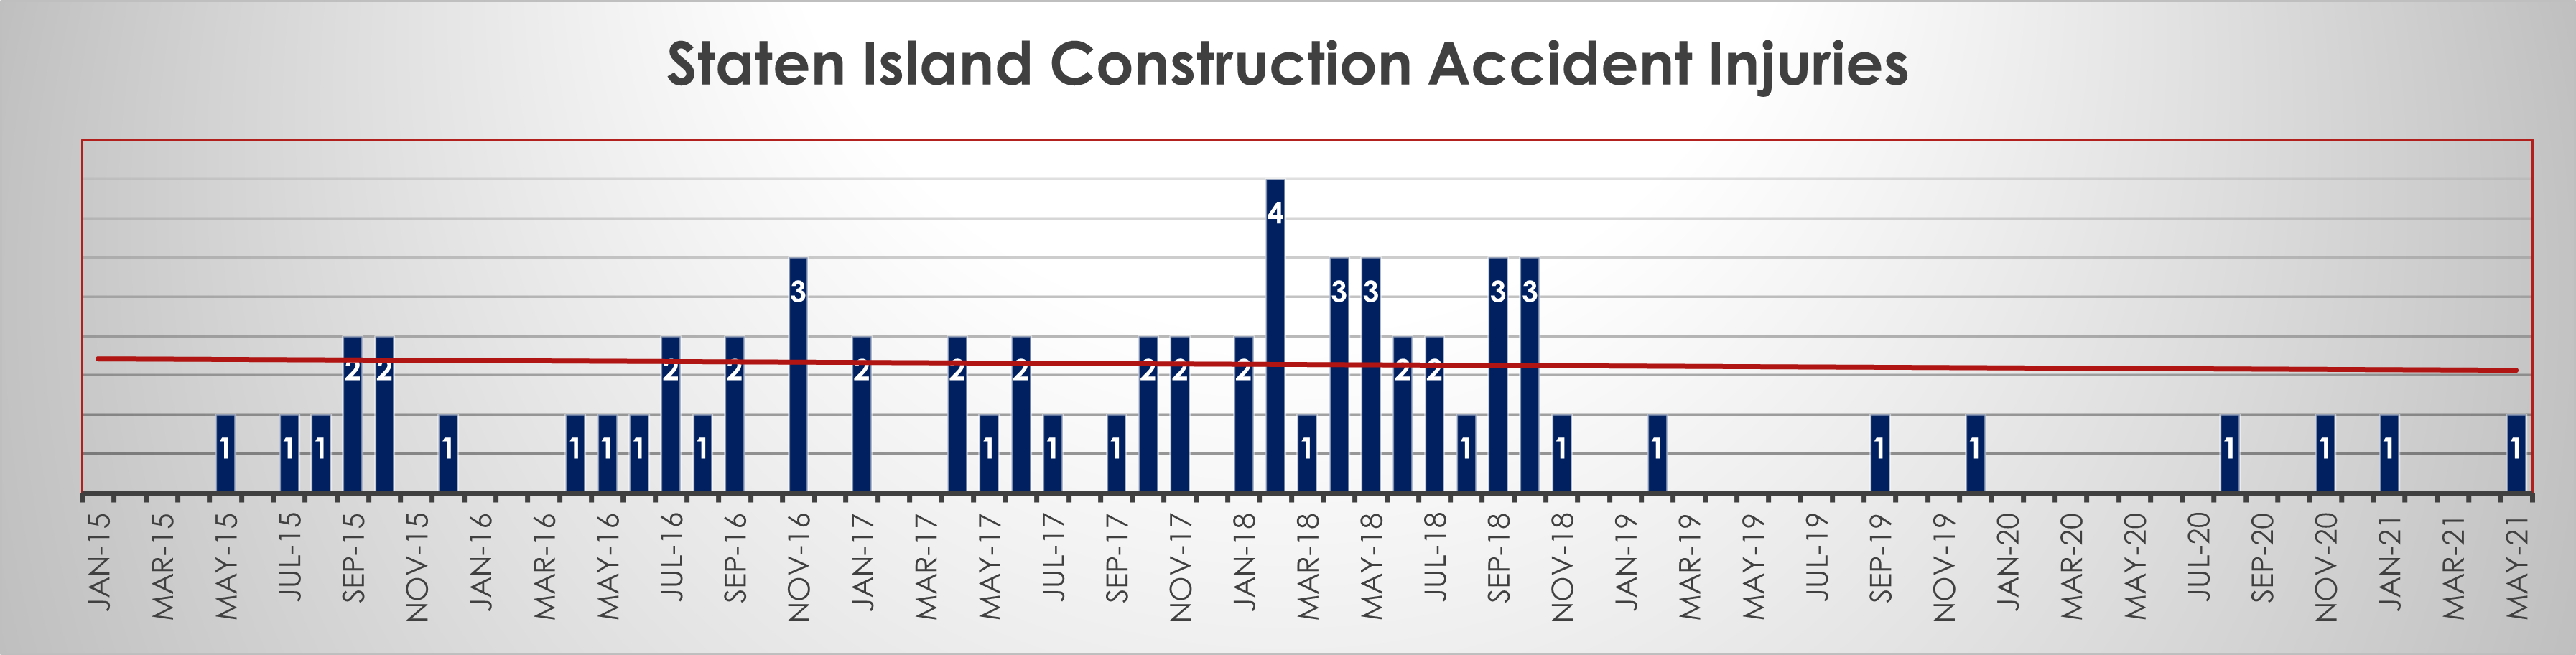 Staten-Island-Construction-Accident-Injuries-May-2021